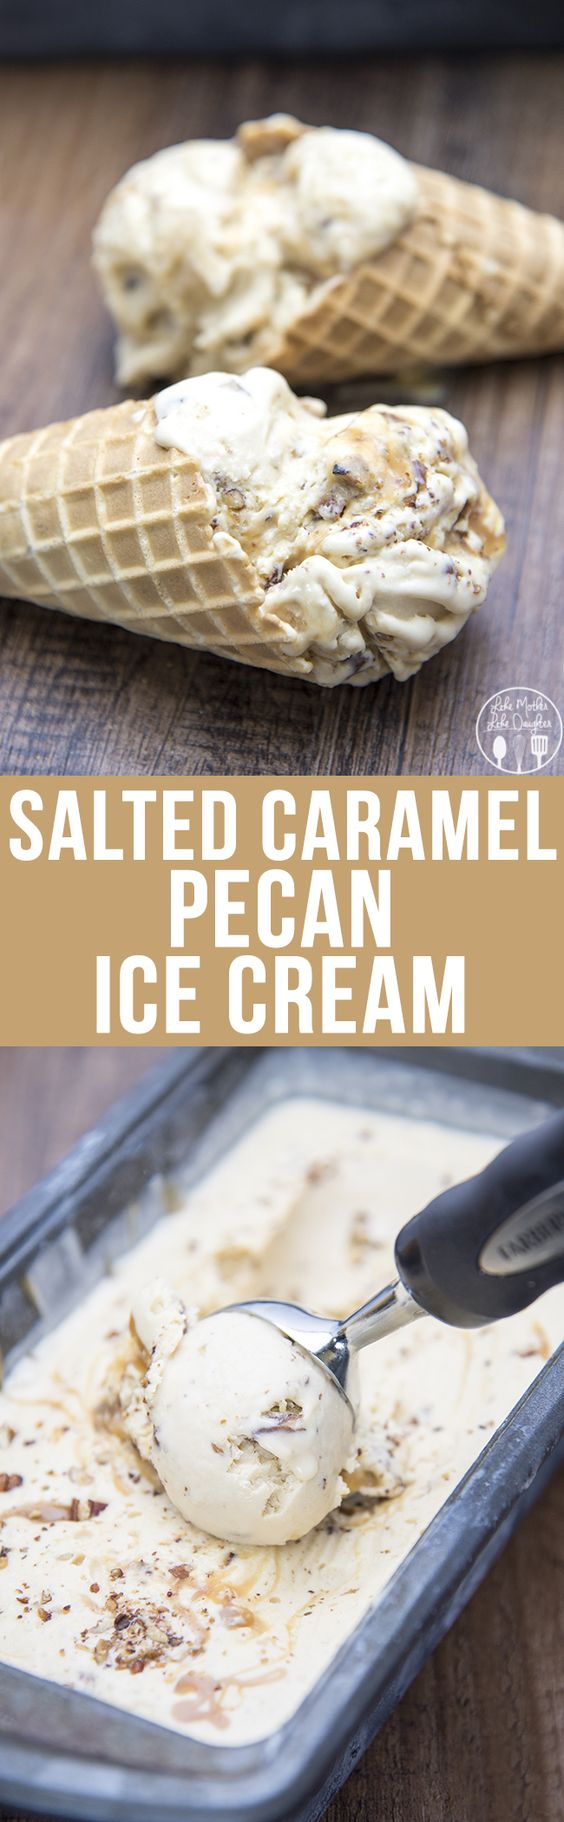 salted caramel pecan ice cream